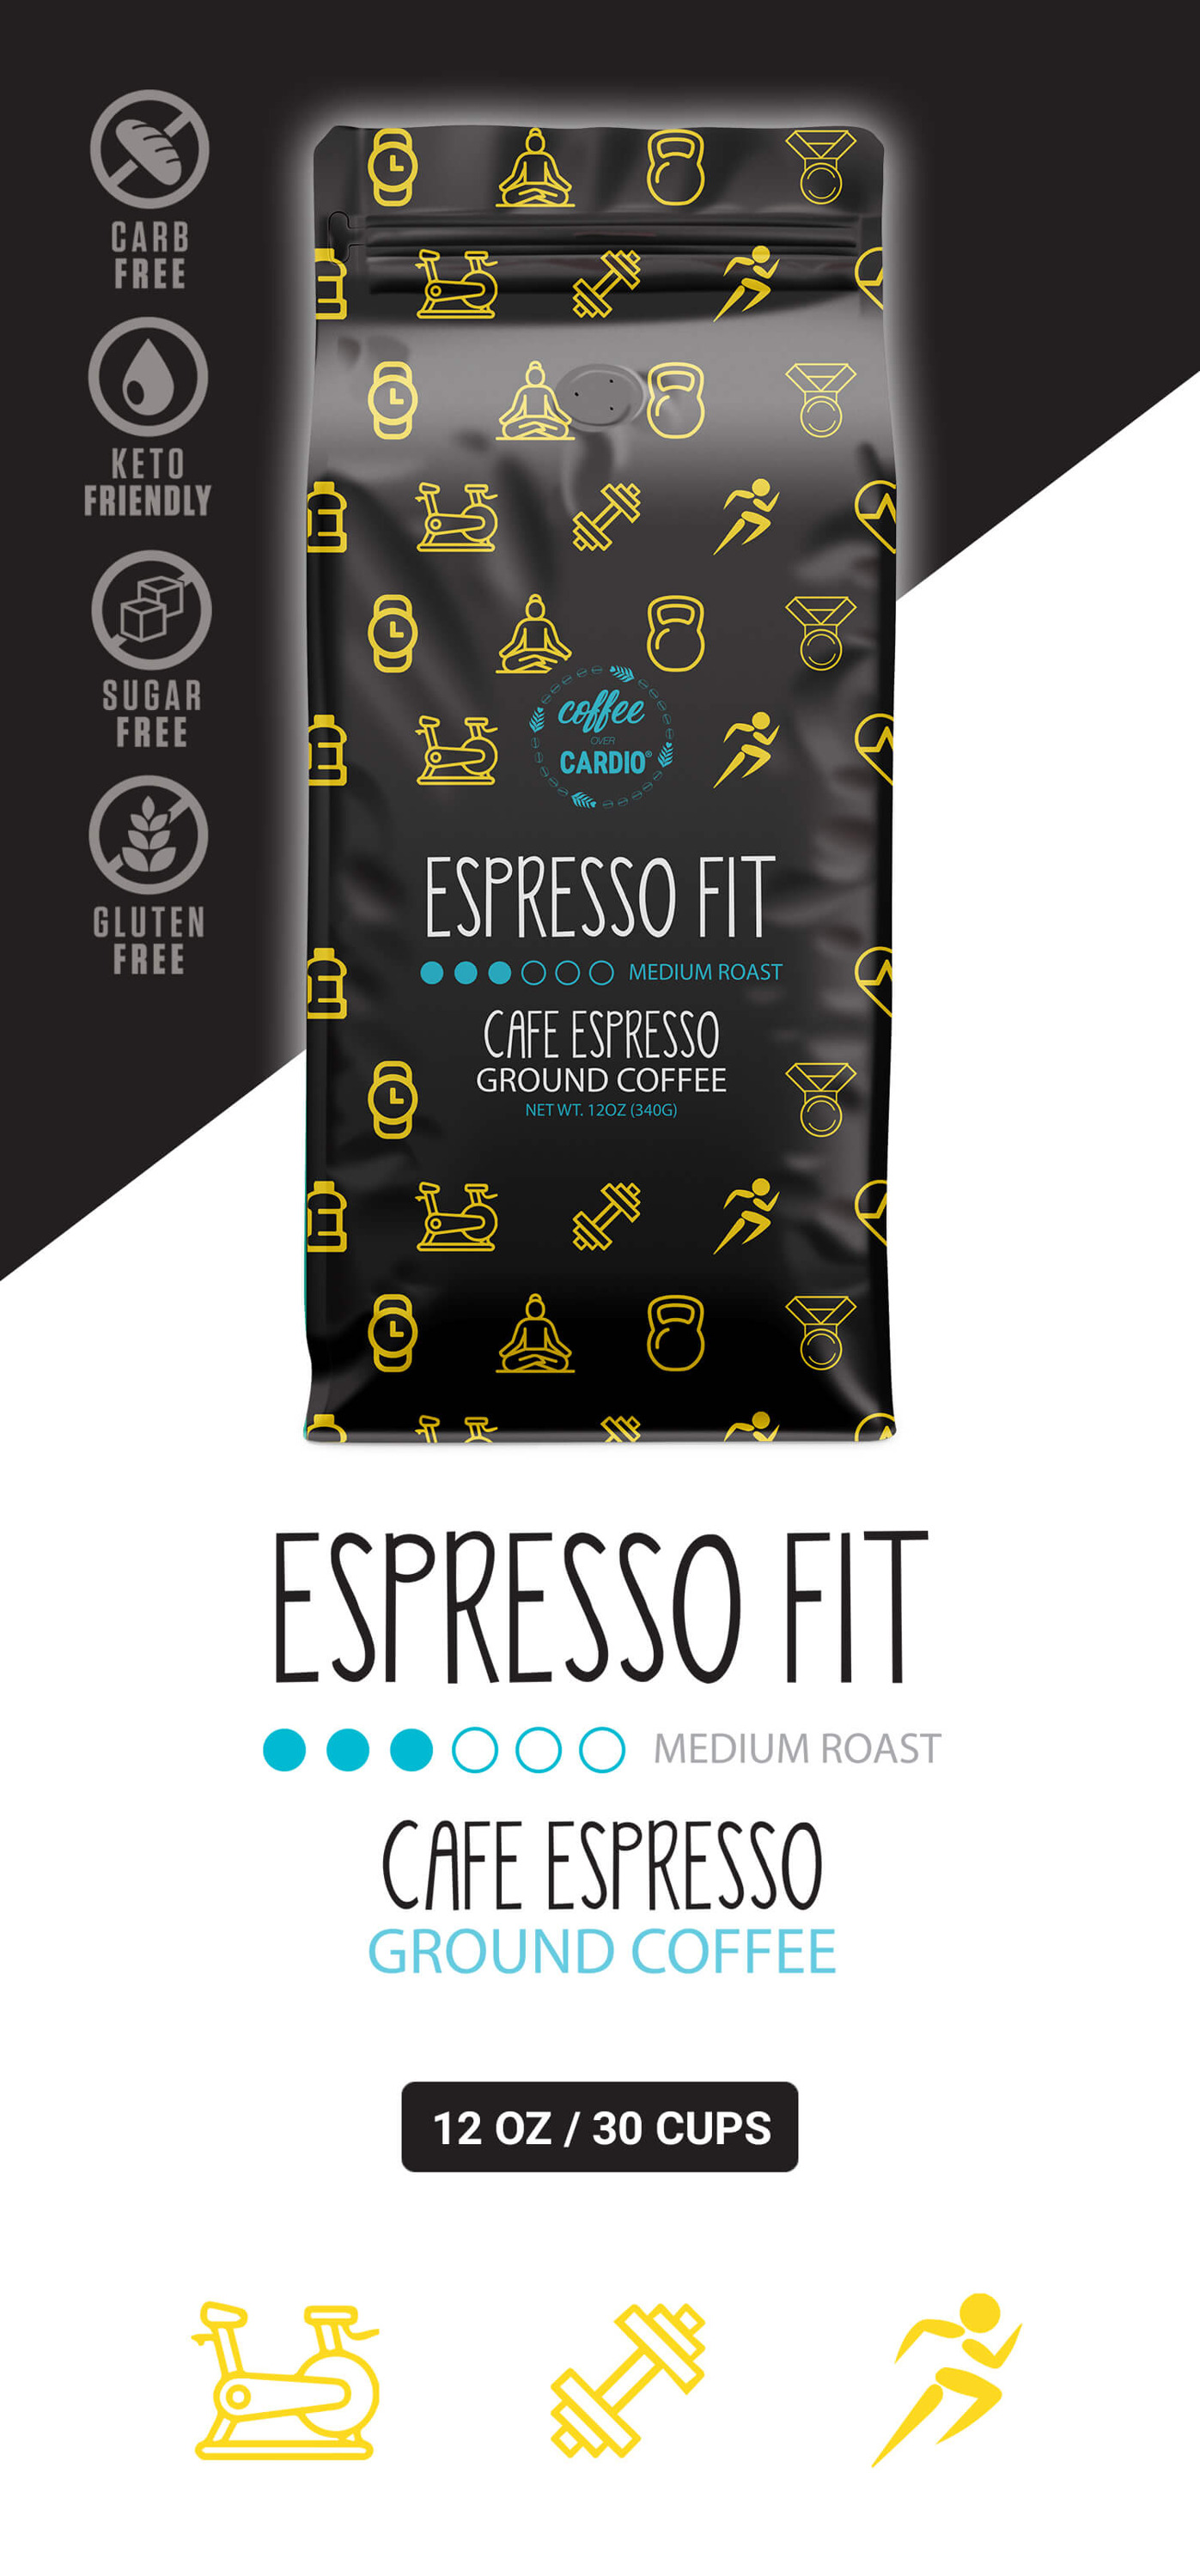 Espresso  Fit - Espresso Coffee - Ground Coffee - Medium Roast - Coffee Over Cardio®